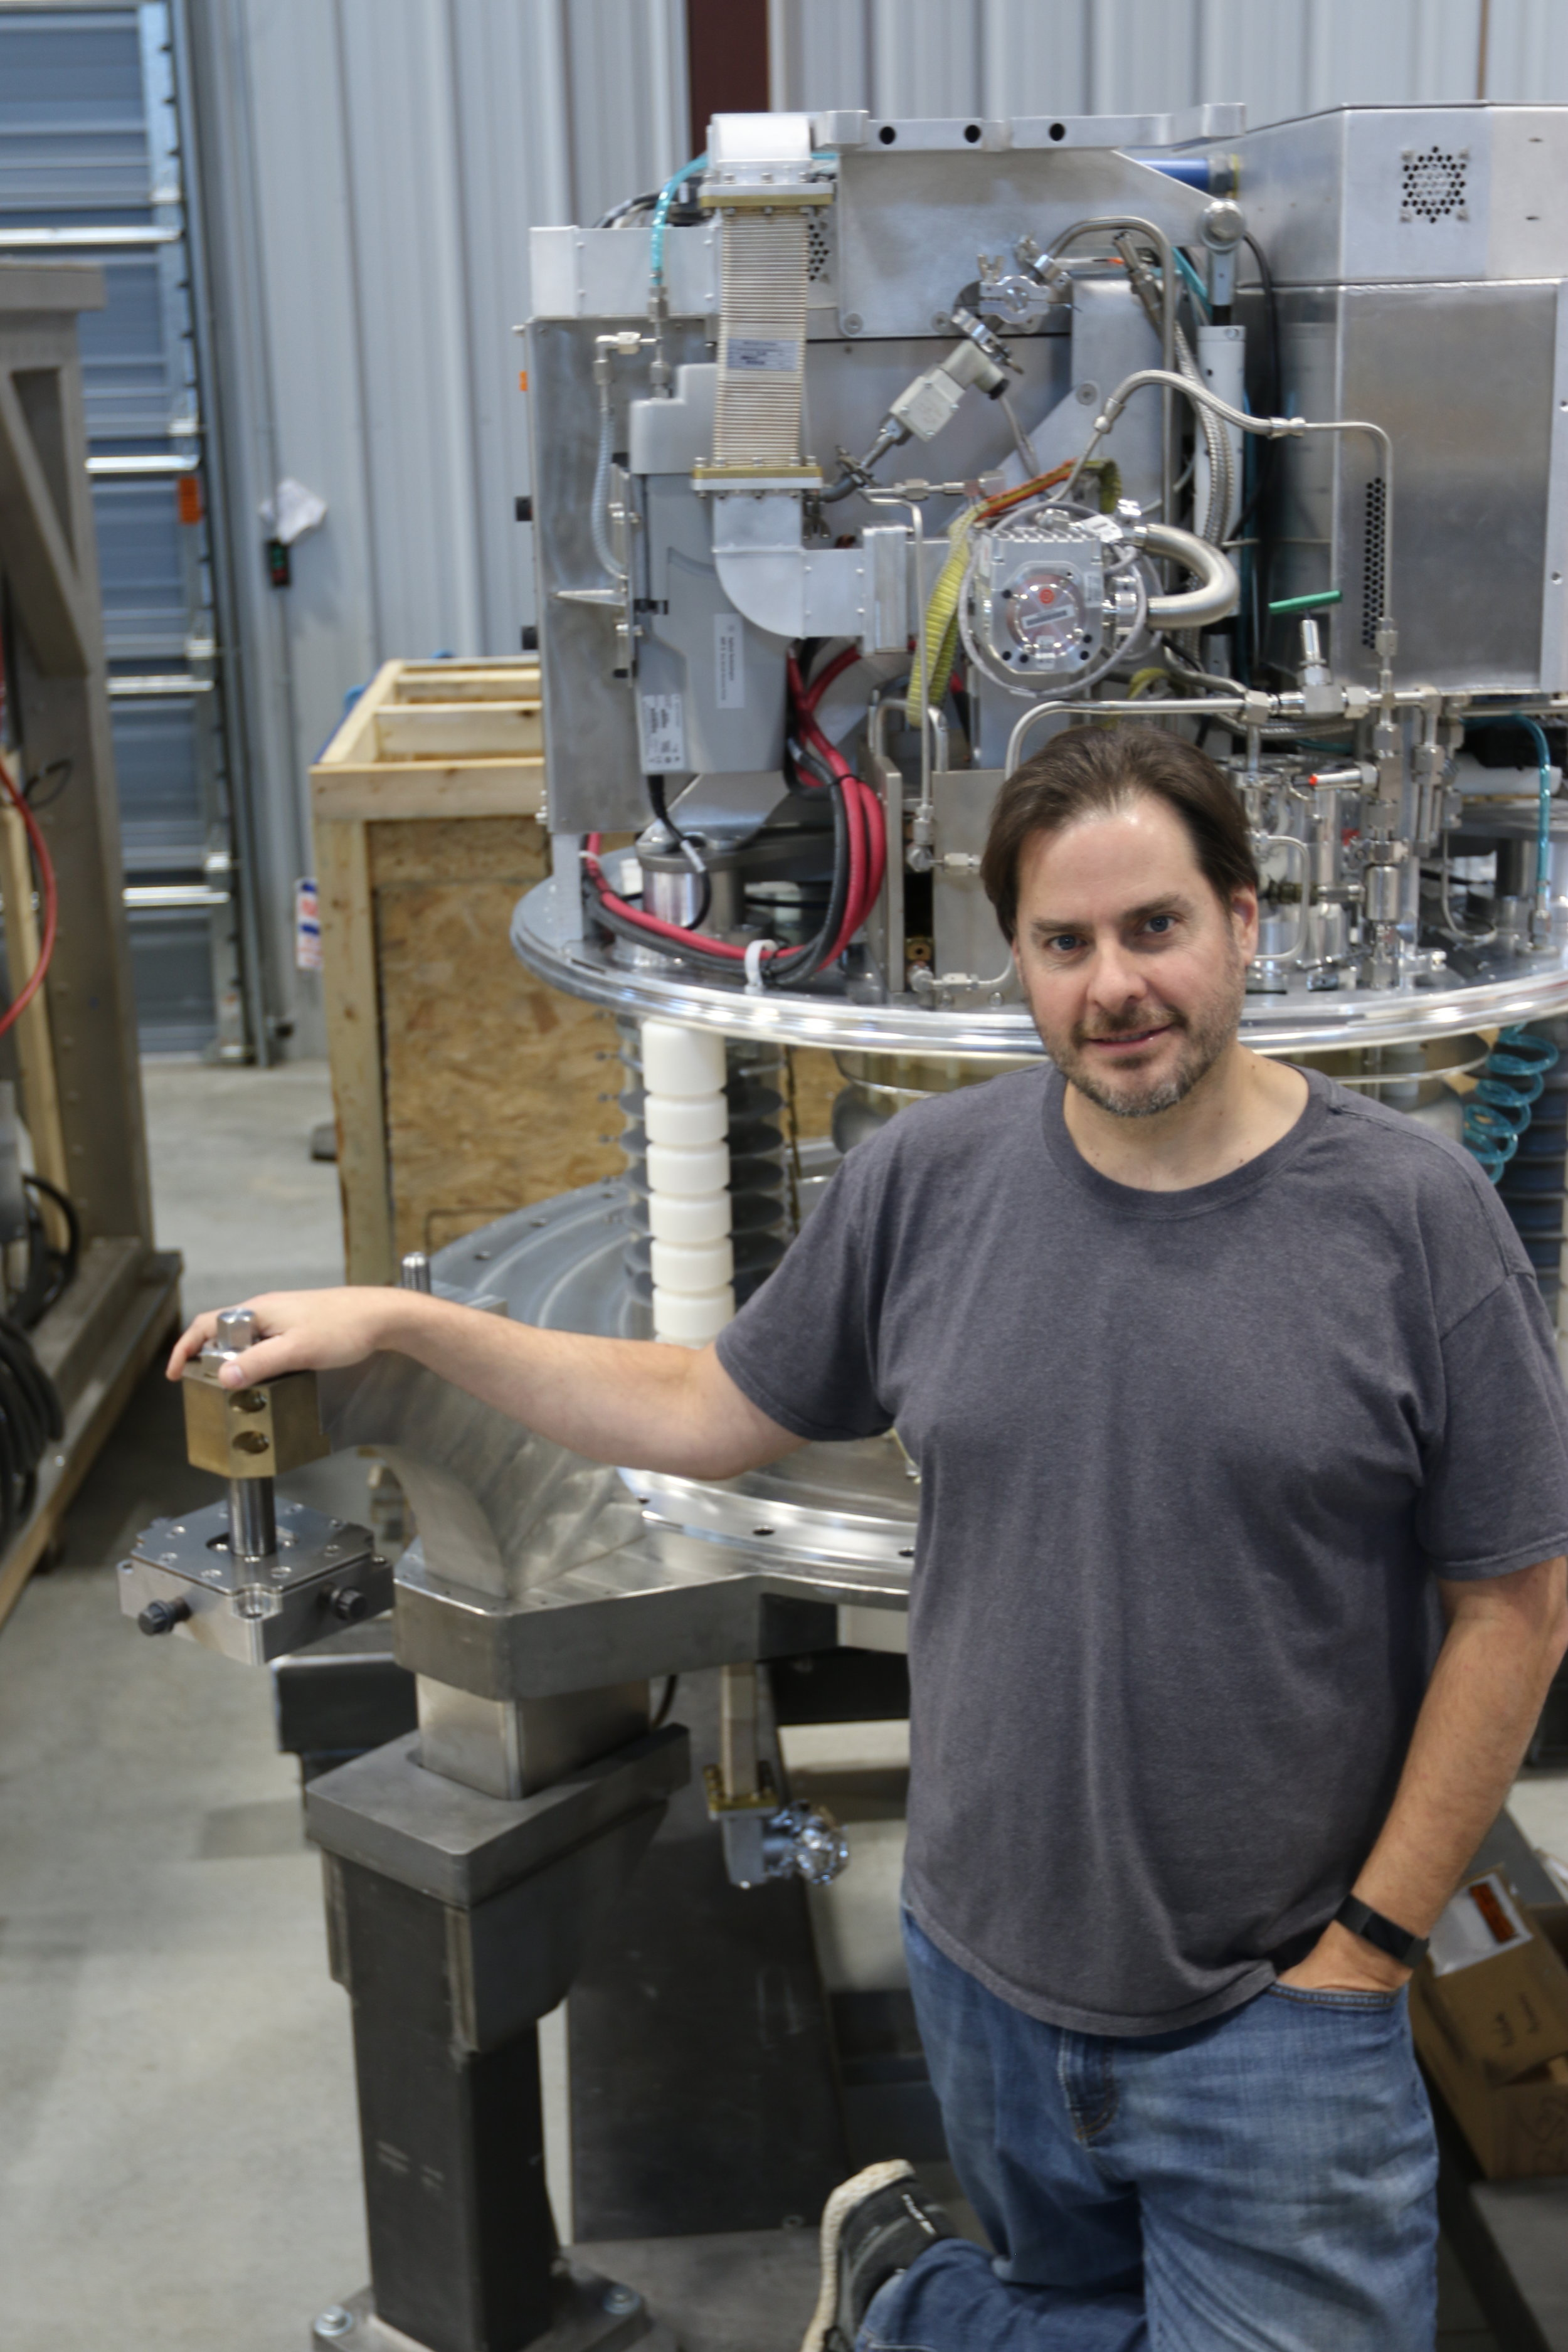 SHINE founder and CEO Greg Piefer poses in front of a Phoenix neutron generator being installed in SHINE's Janesville facility